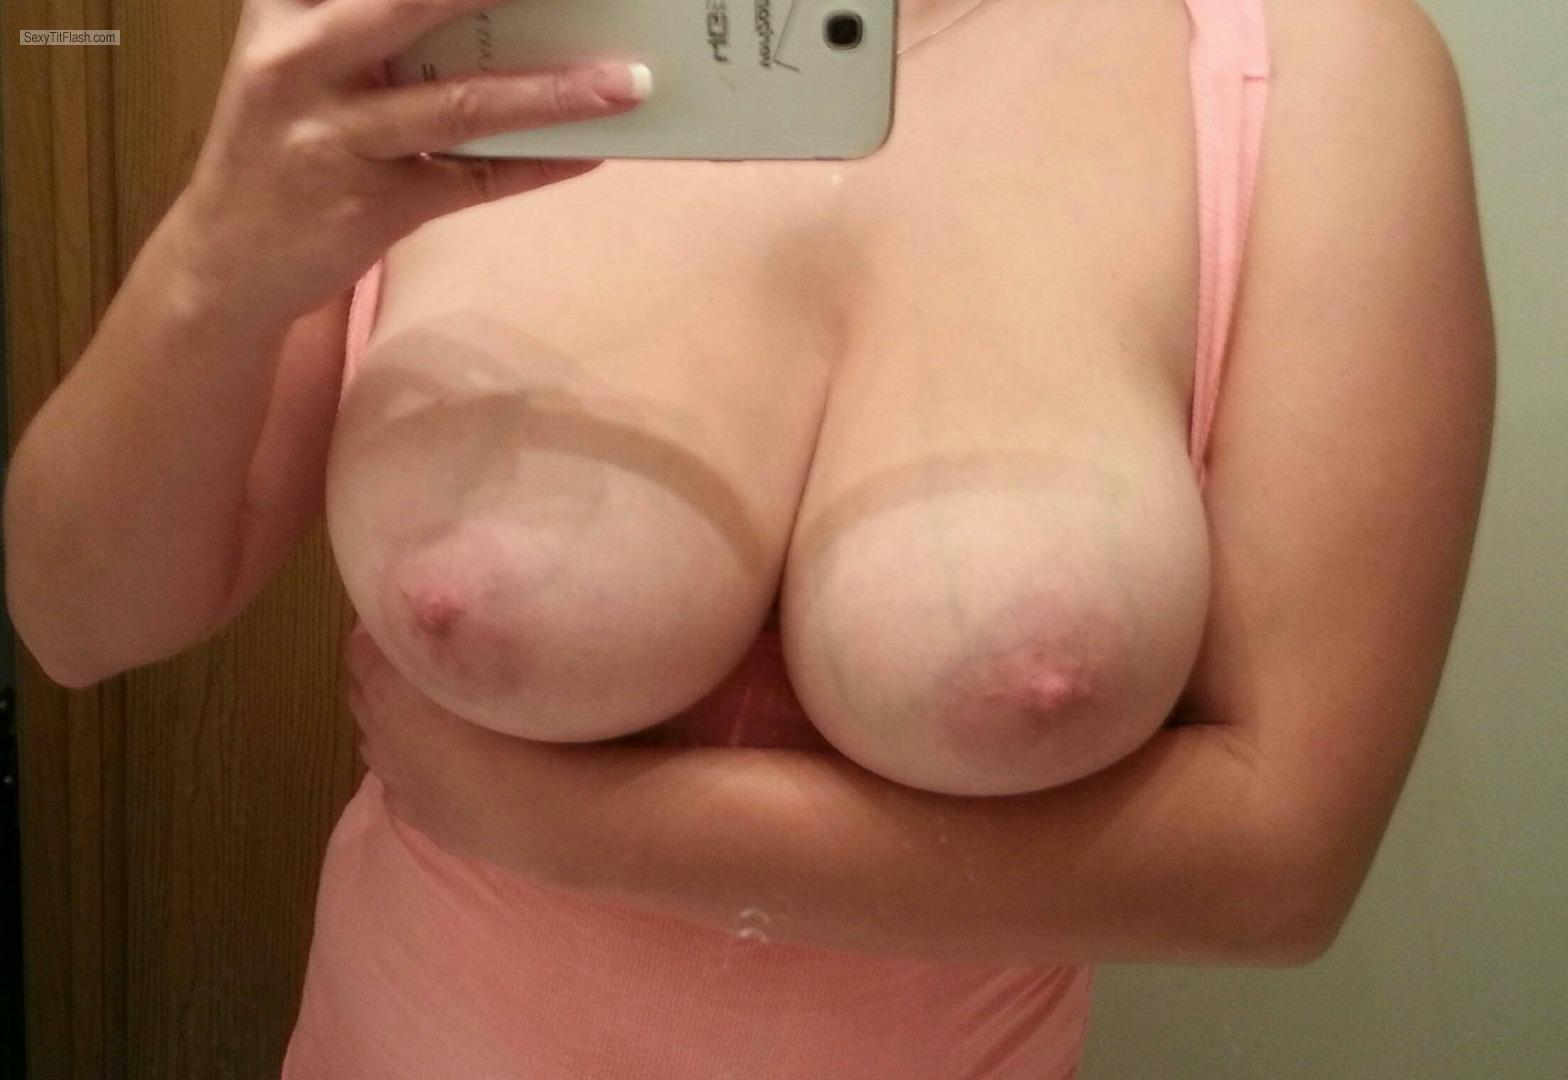 Big Tits Of My Wife Selfie by 38DDD